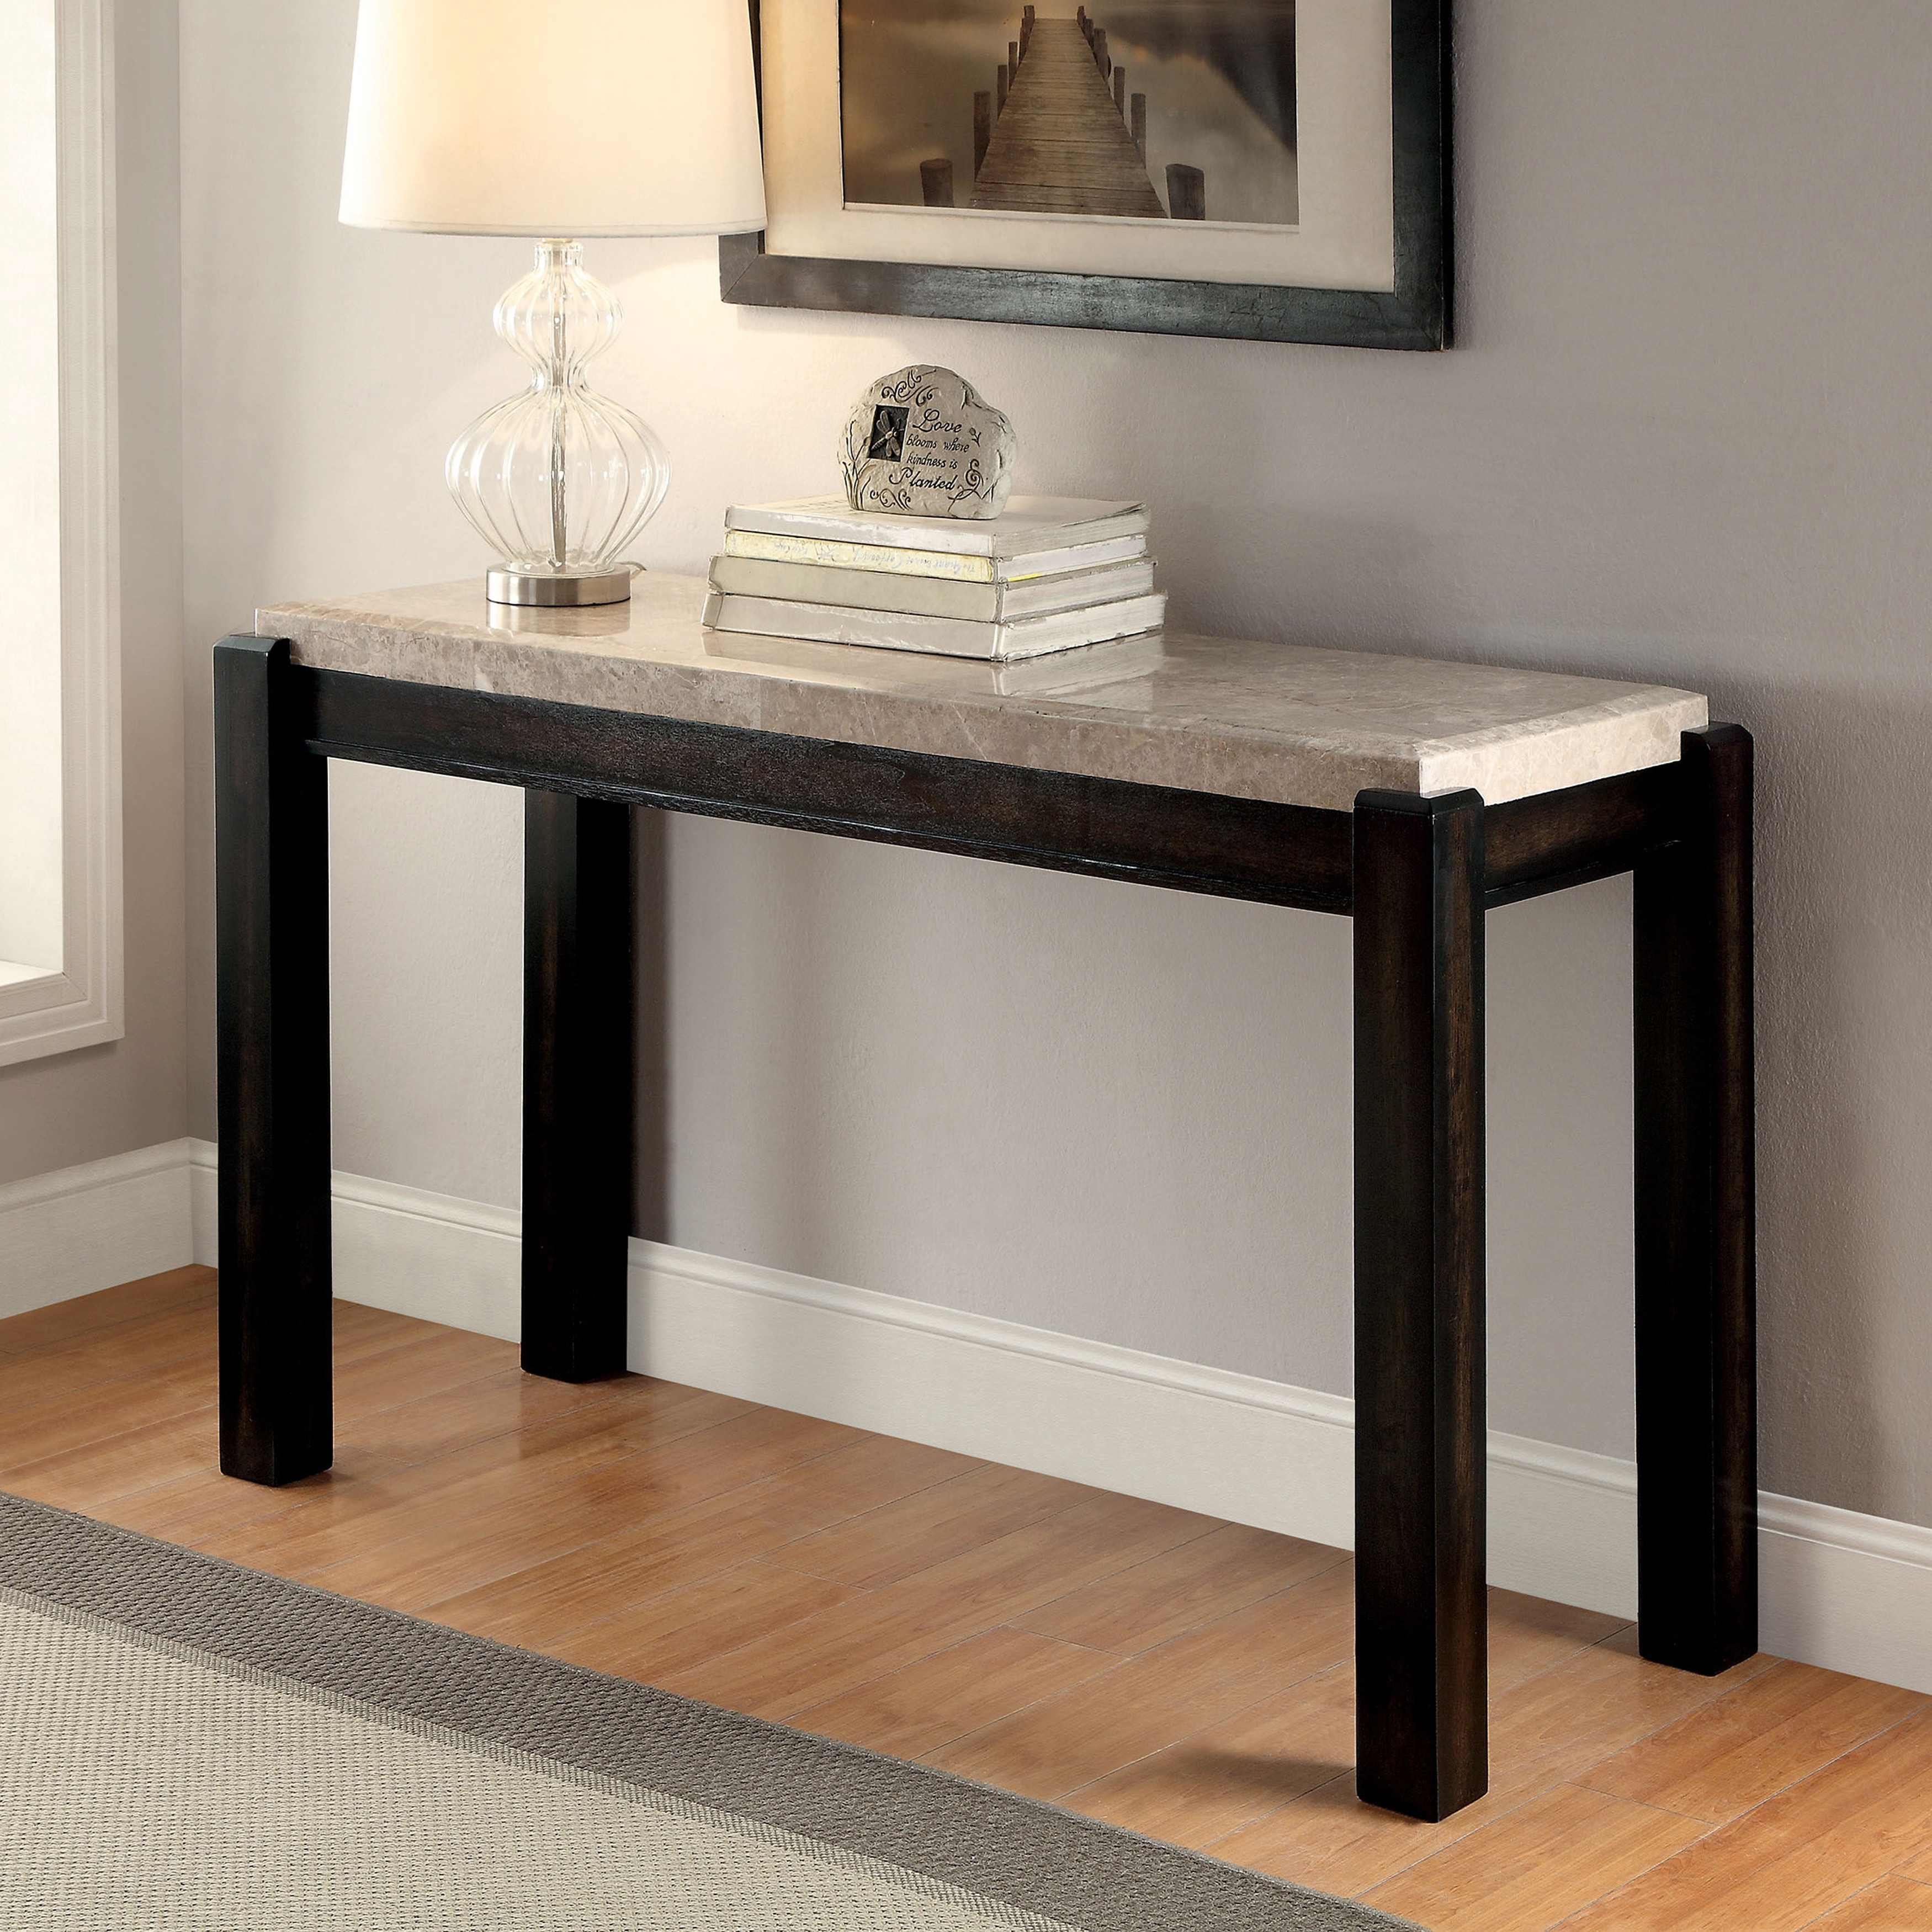 Furniture Of America Leslie Genuine Marble Top Sofa Table Free Shipping Today 21426684